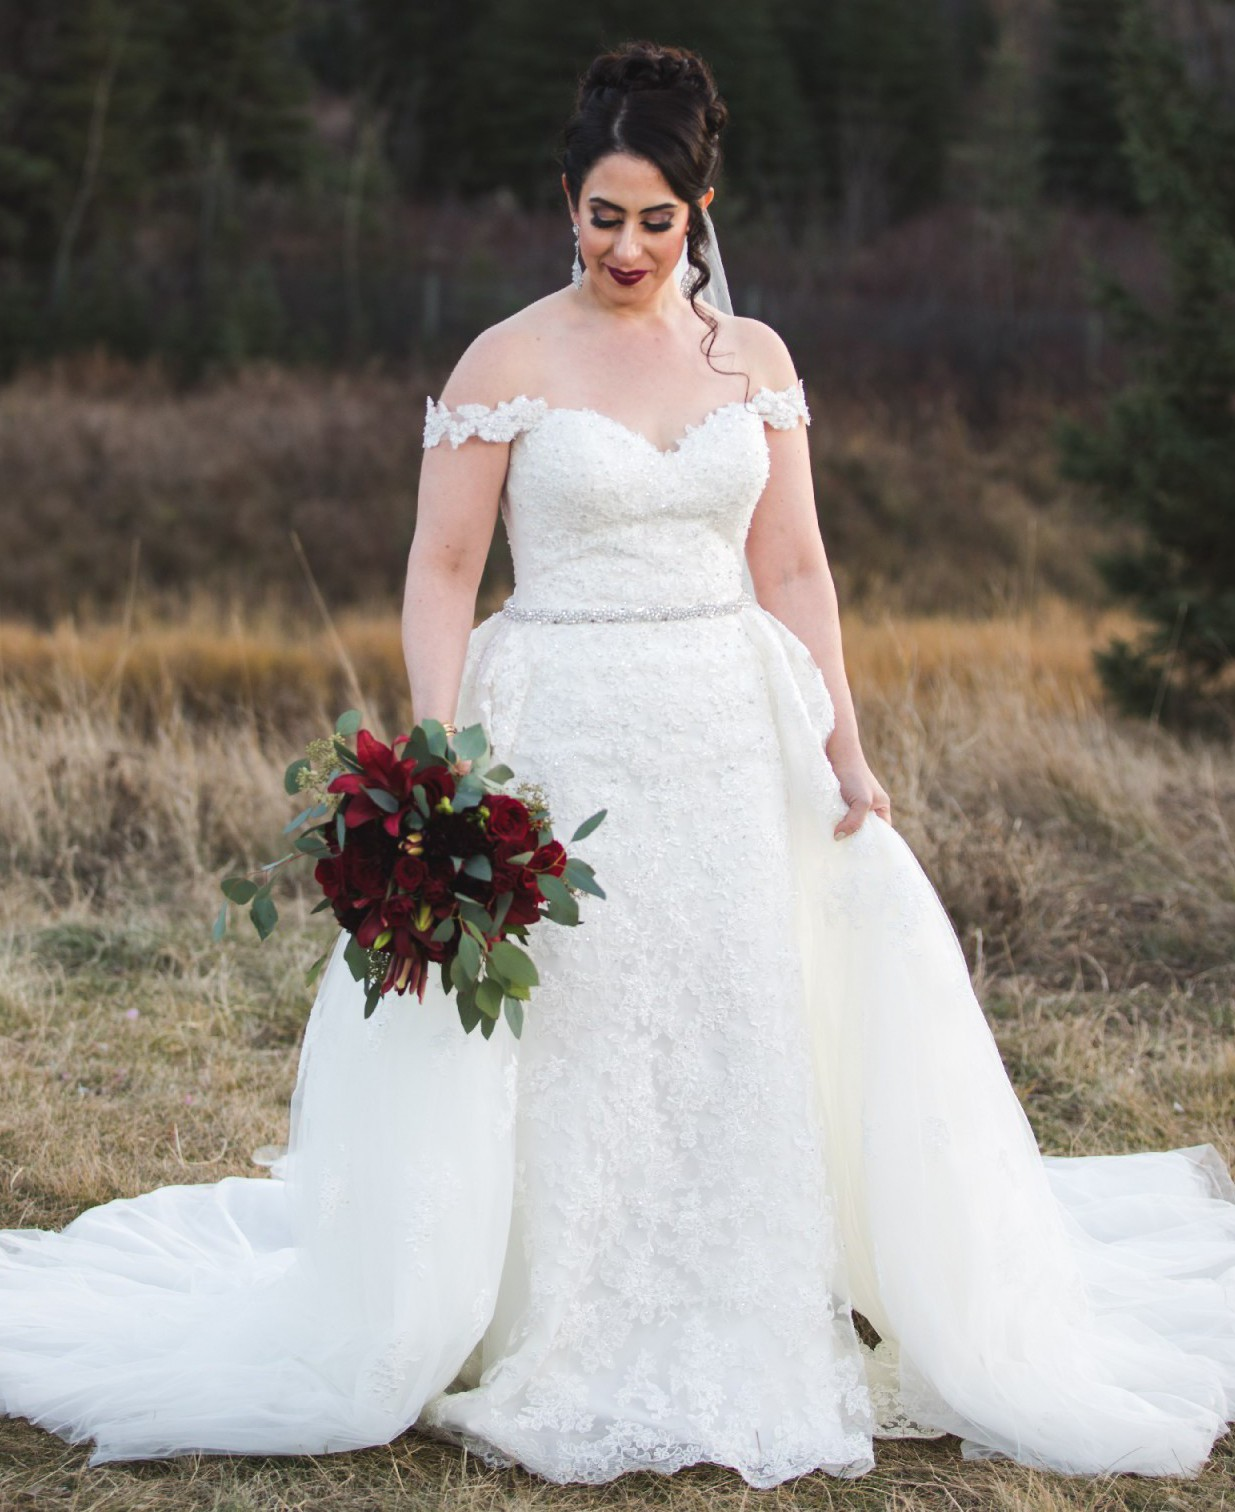 Cost Of Sophia Tolli Wedding Gowns: Sophia Tolli Y11652 Maeve Preowned Wedding Dress On Sale